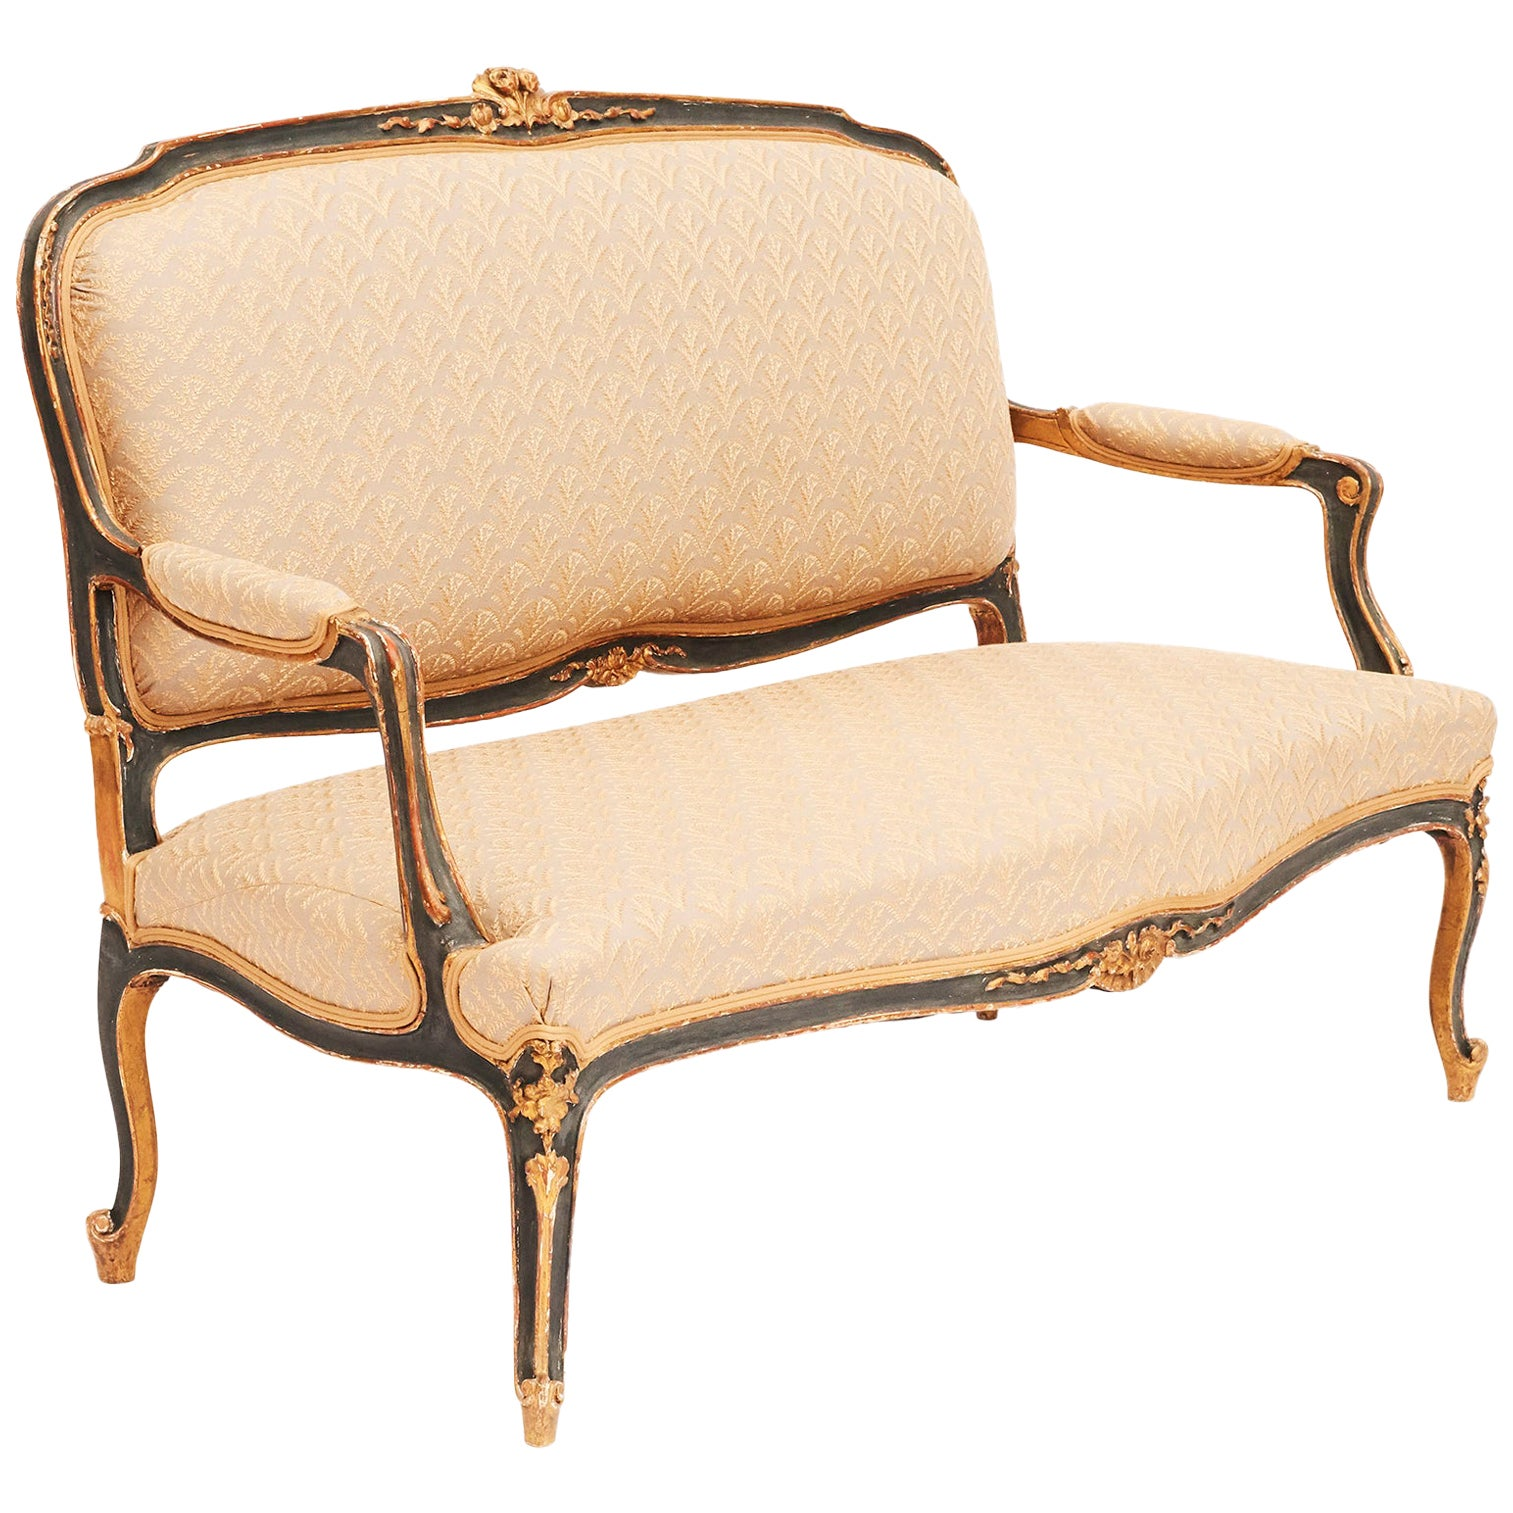 19th Century French Canapé Sofa in Rococo / Louis XV Style